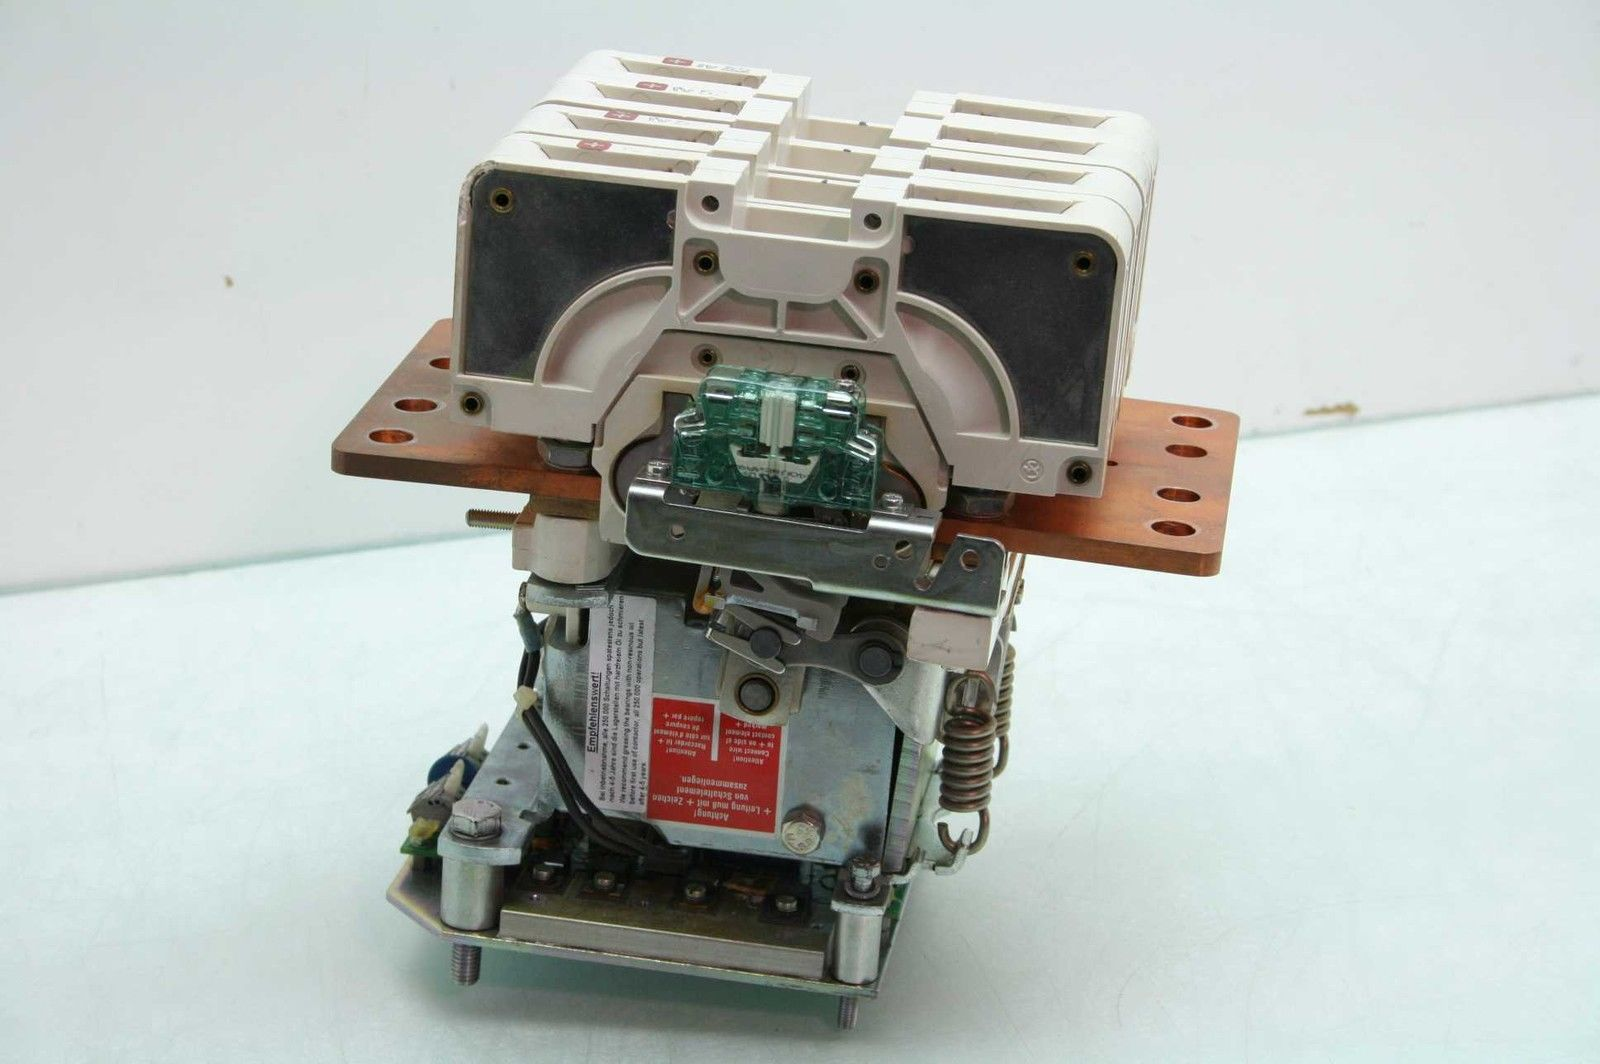 Schaltbau C157-P40-E-24EX-G1-P 4 Pole High Voltage DC Contactor 24V DC Coil  300A - Used